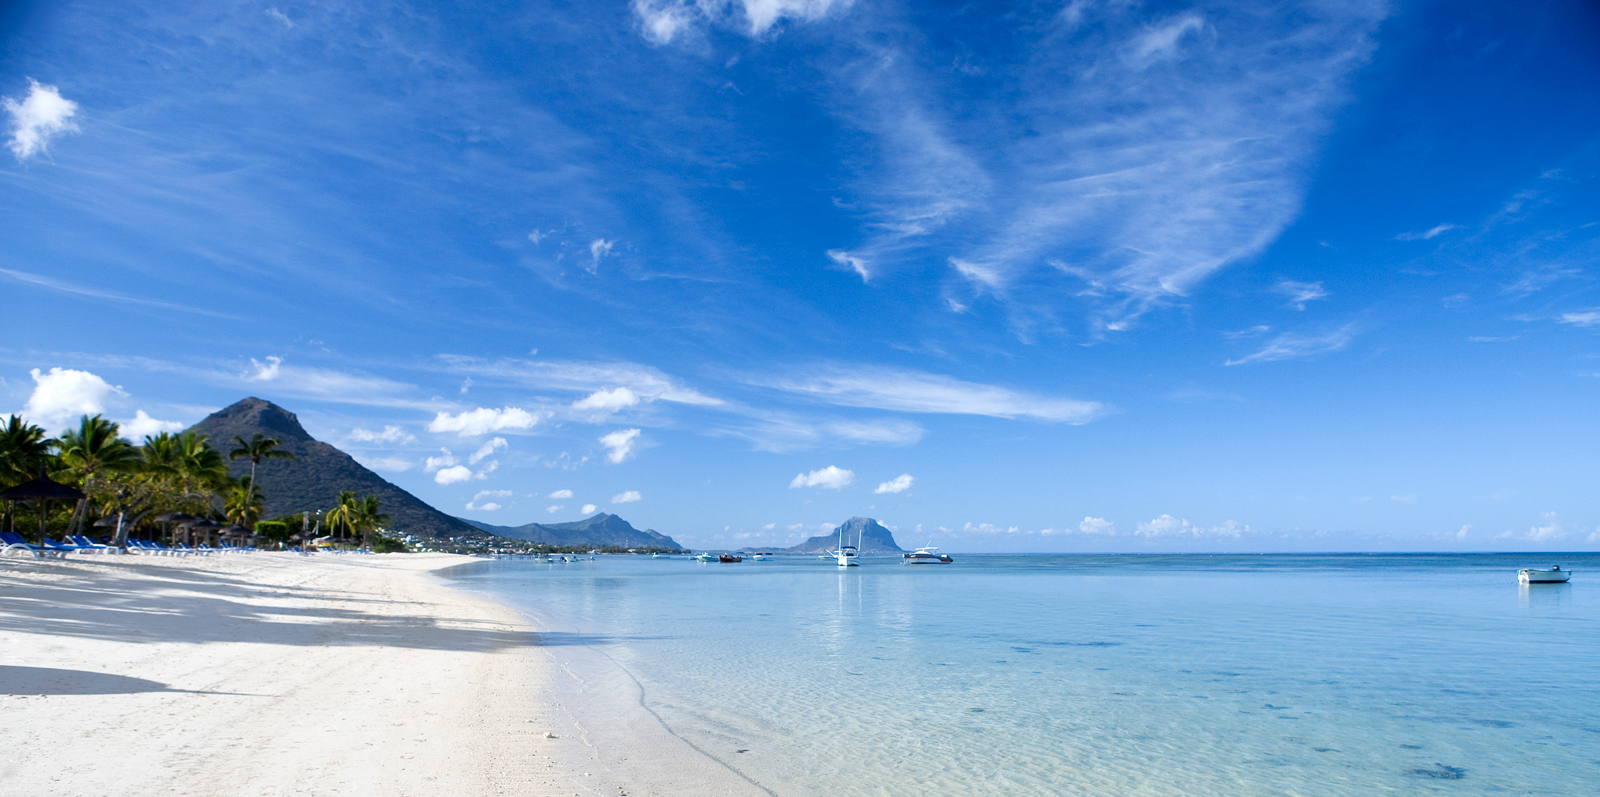 Long stretches of white sand beaches and glassy lagoons are what make the island so popular with tourists ©Mauritius Tourism